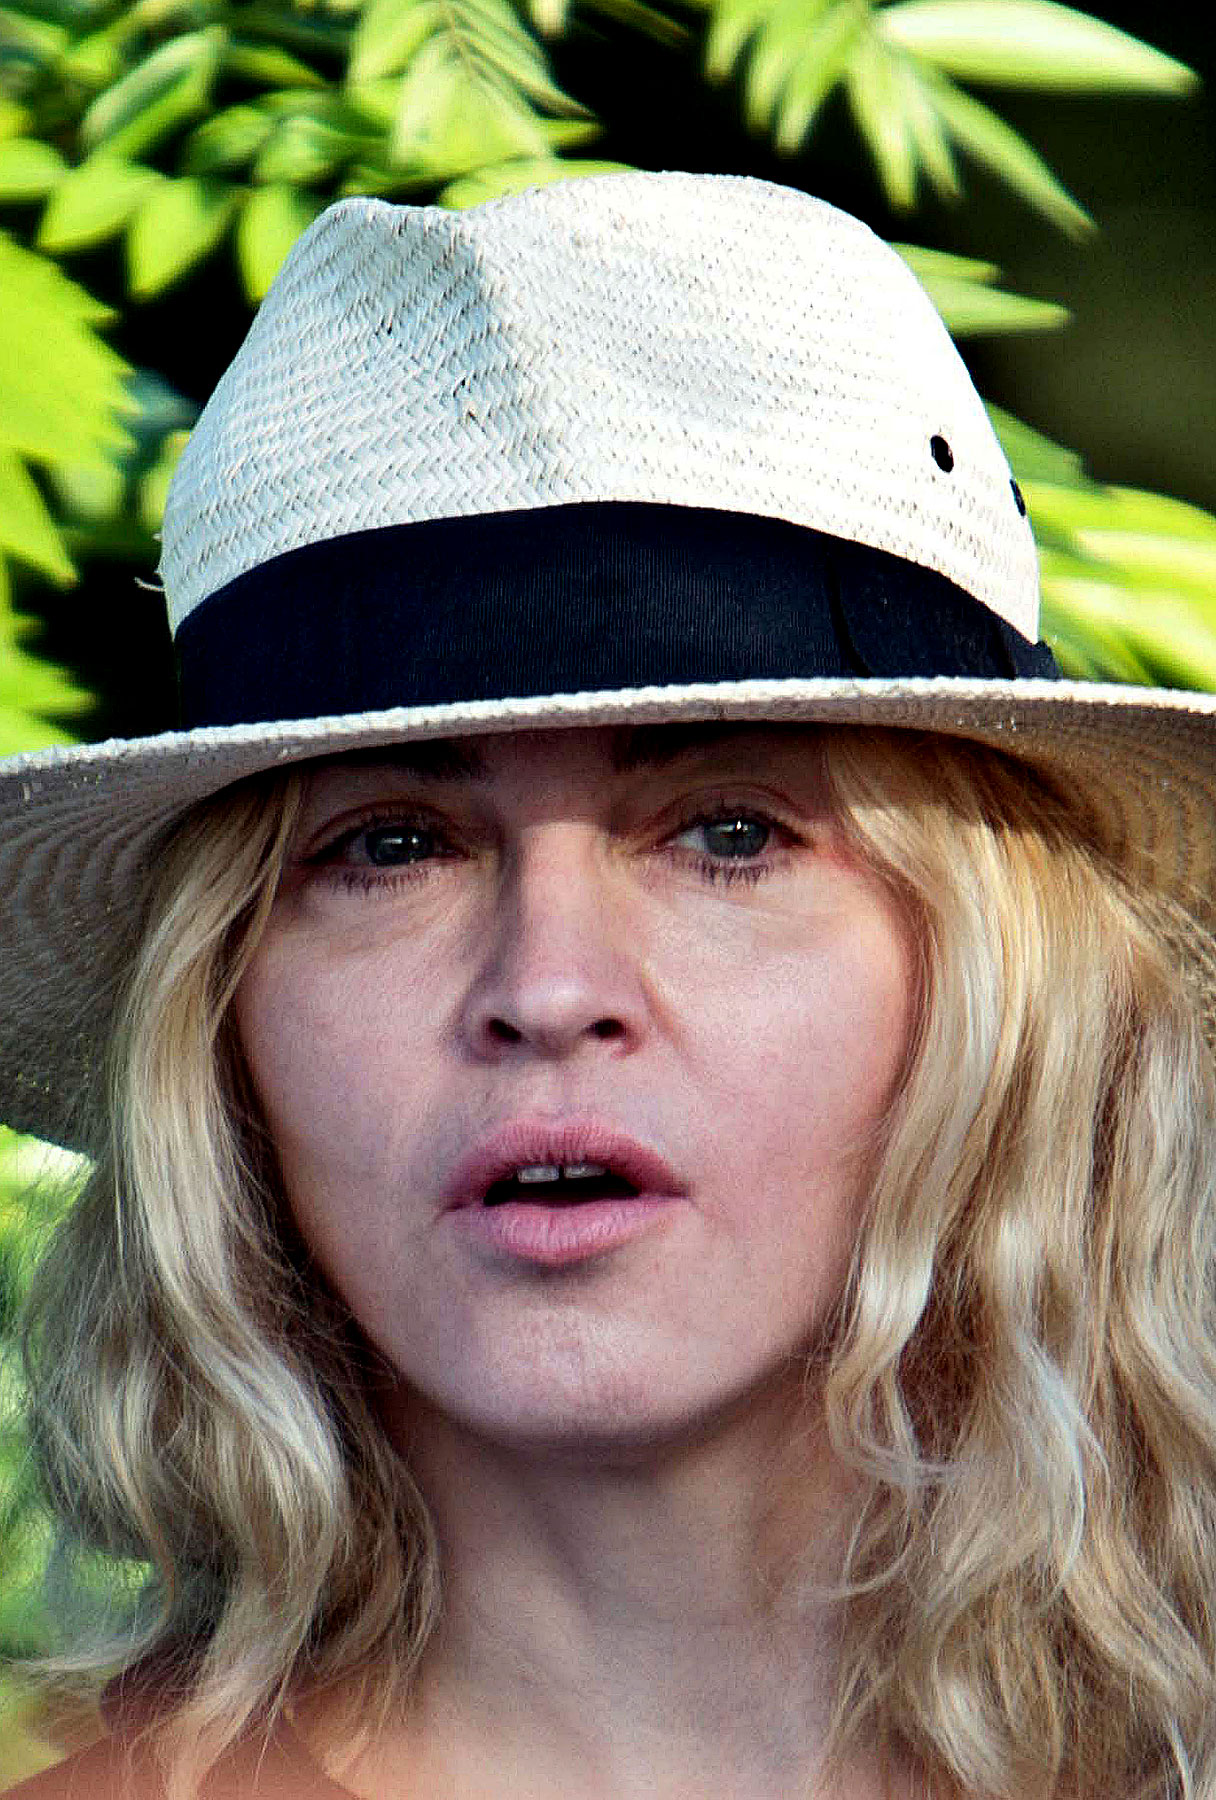 Madonna Arrives in Malawi for Sightseeing, Adoption